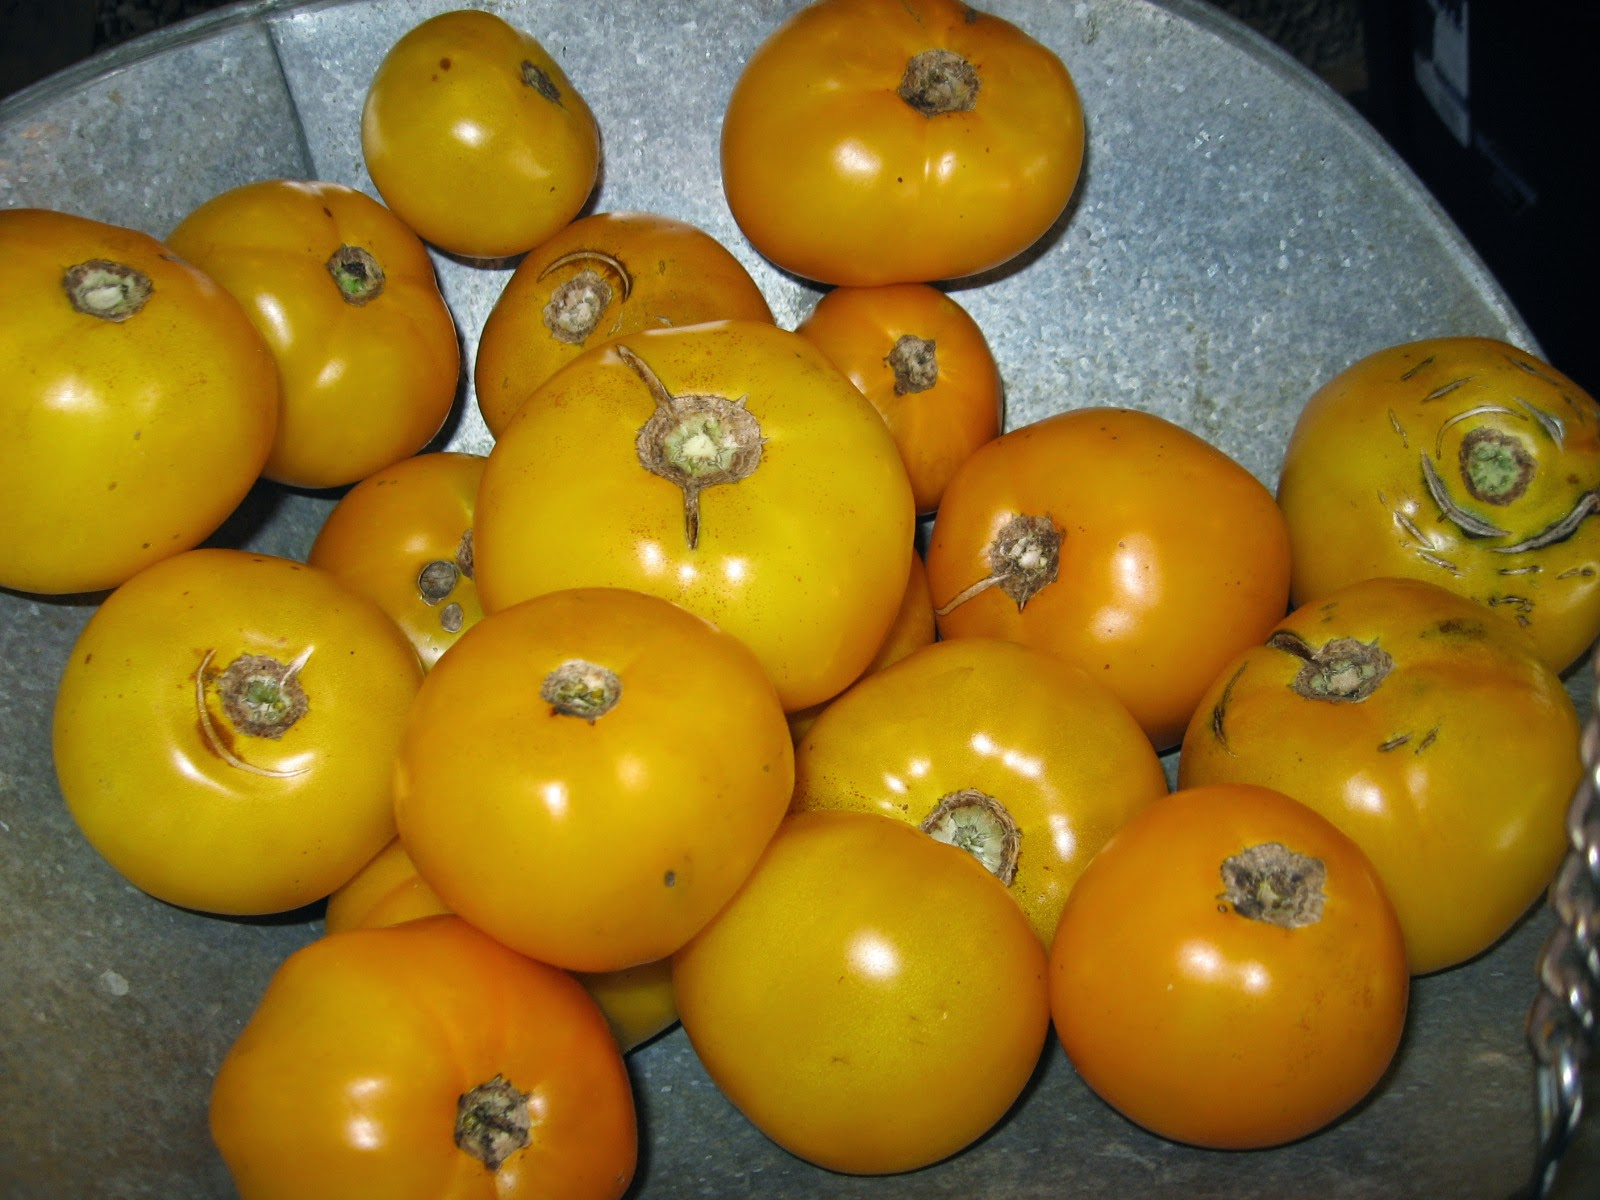 Goldie Boy tomatoes